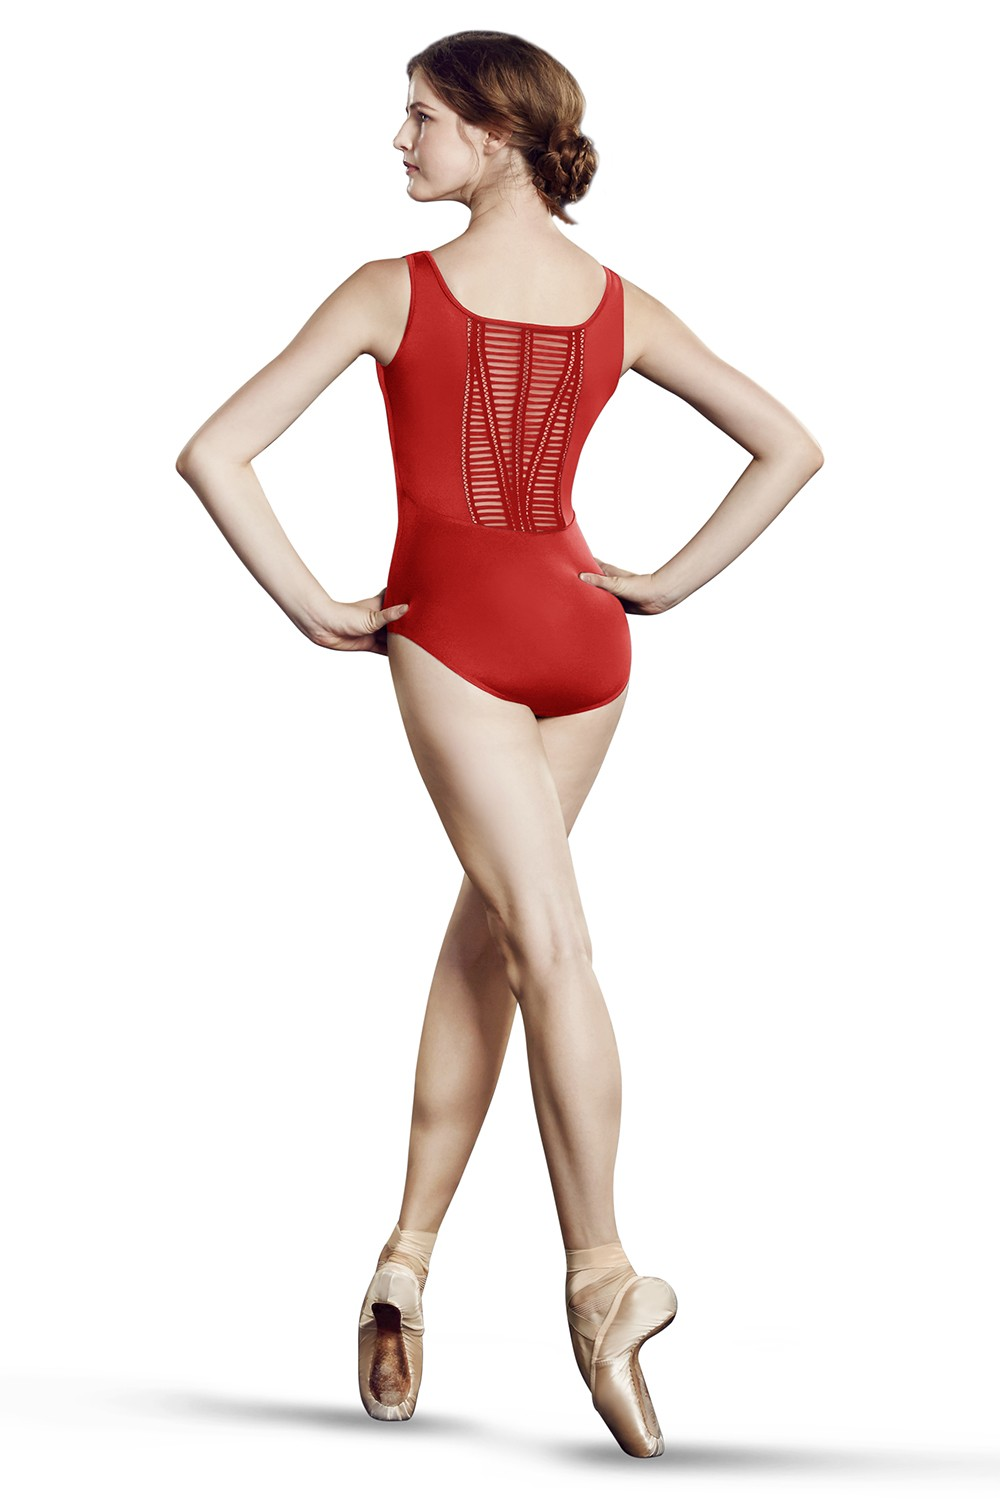 Z Elastic Tank Leotard Women's Dance Leotards